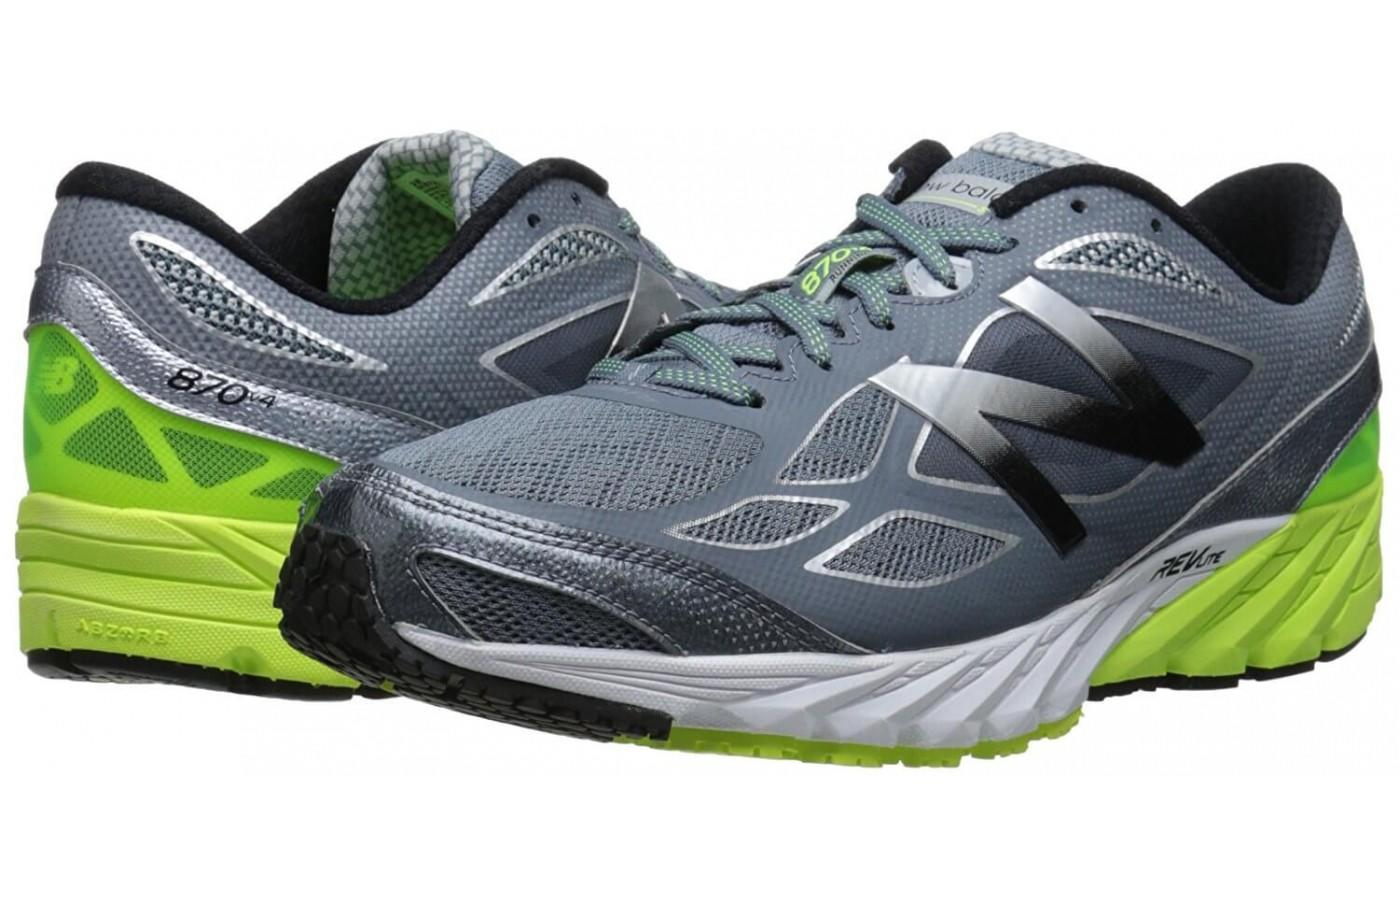 the new balance 870 v4 has been discontinued